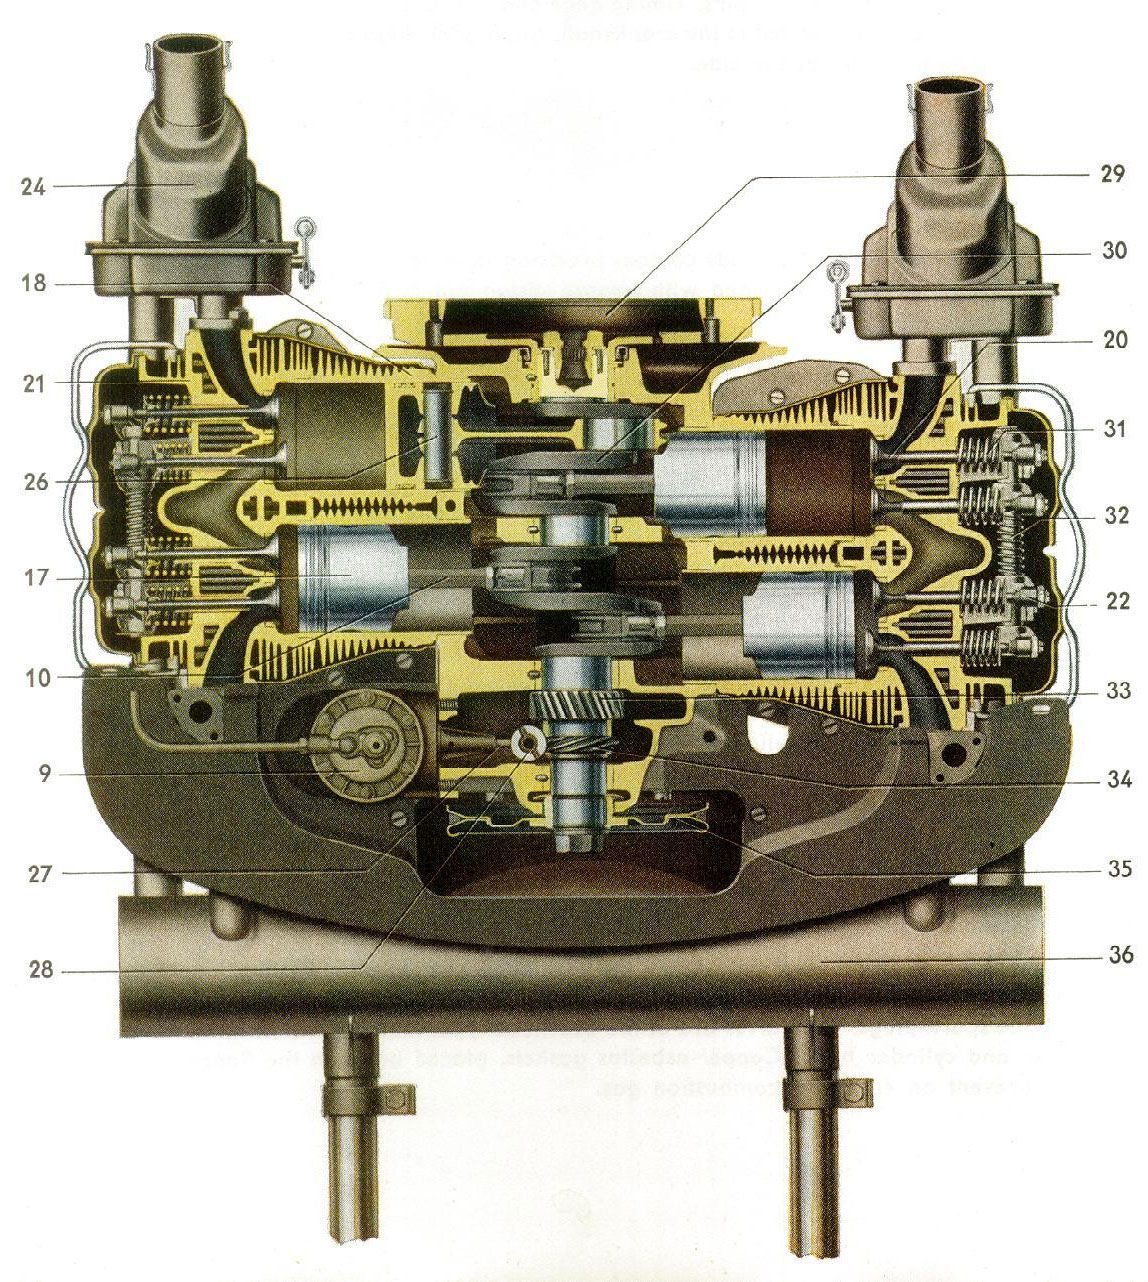 vw 1600 engine diagram of sciatic nerve leg bus for sale wallpaper mecanica e engenharia